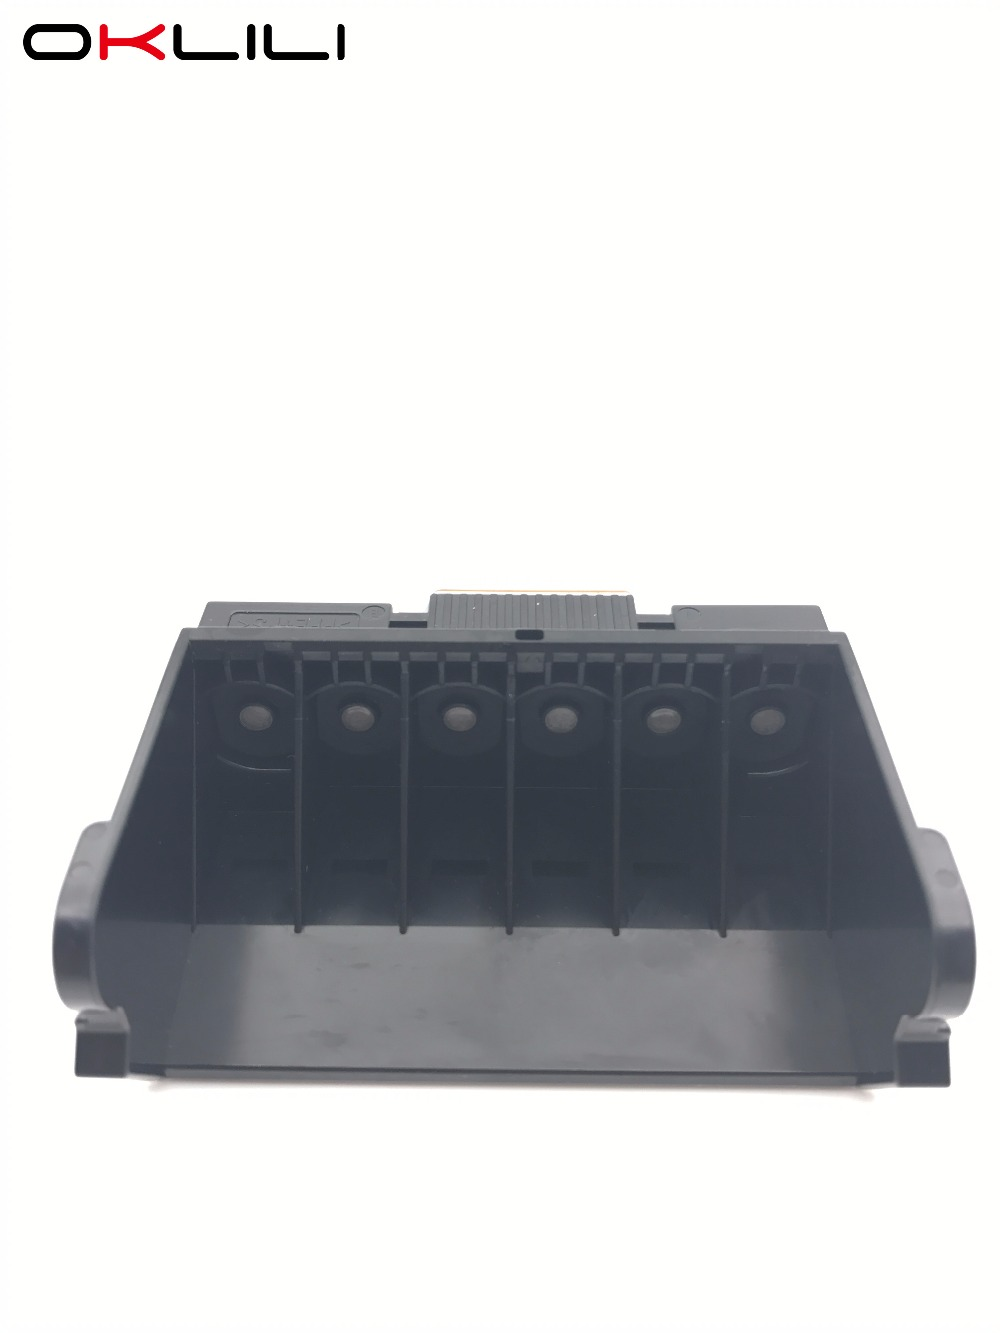 OKLILI ORIGINAL QY6-0063 QY6-0063-000 Printhead Print Head Printer Head for Canon iP6600D iP6700D iP6600 iP6700 oklili original qy6 0045 qy6 0045 000 printhead print head printer head for canon i550 pixus 550i